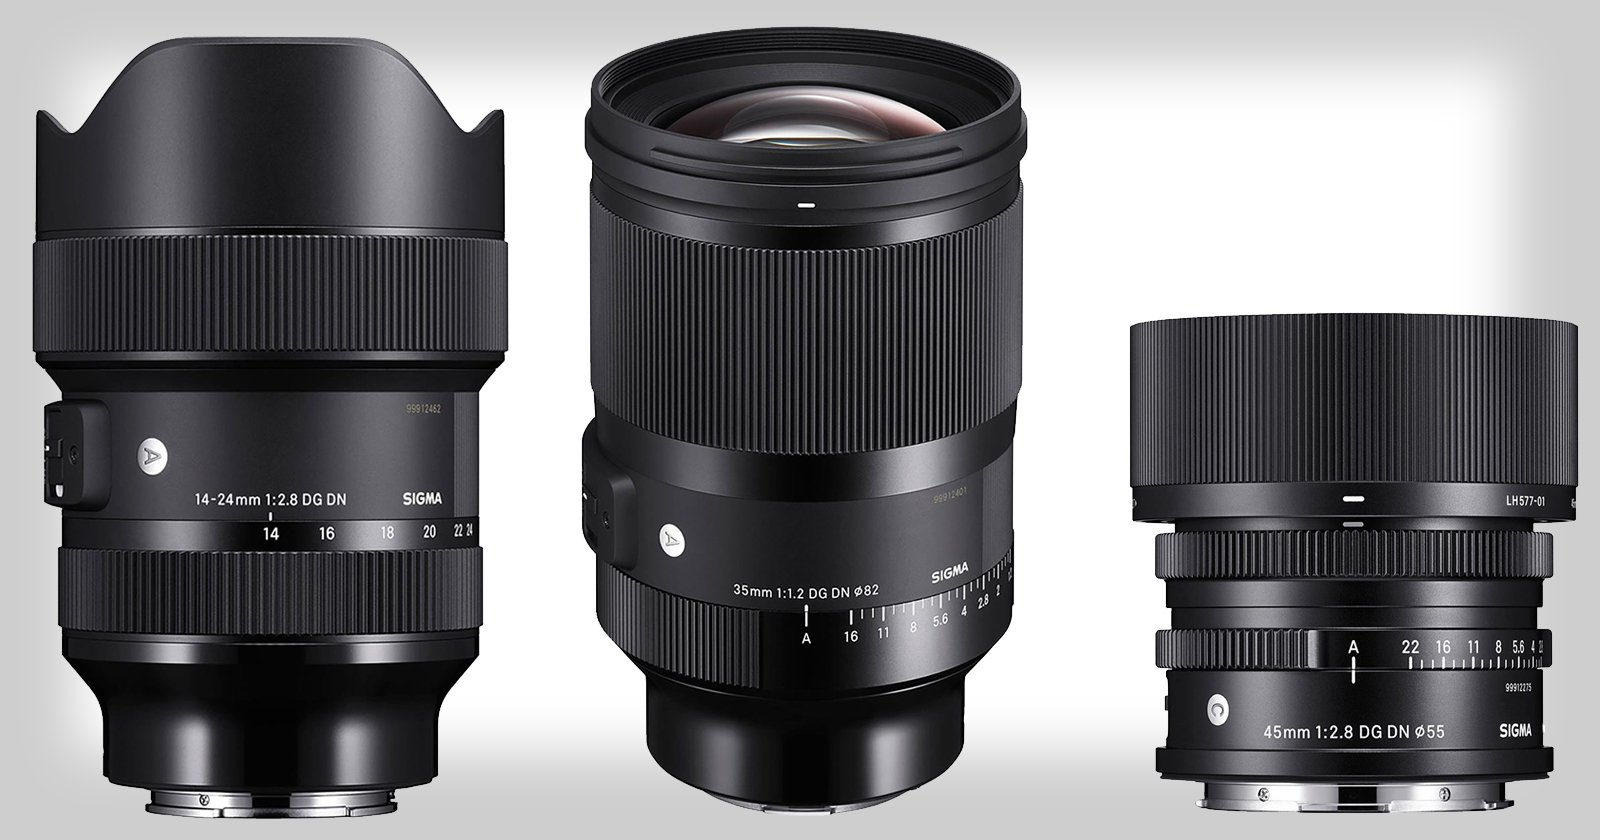 Sigma Debuts 3 Full-Frame Mirrorless Lenses, Including Their First f/1.2 Lens